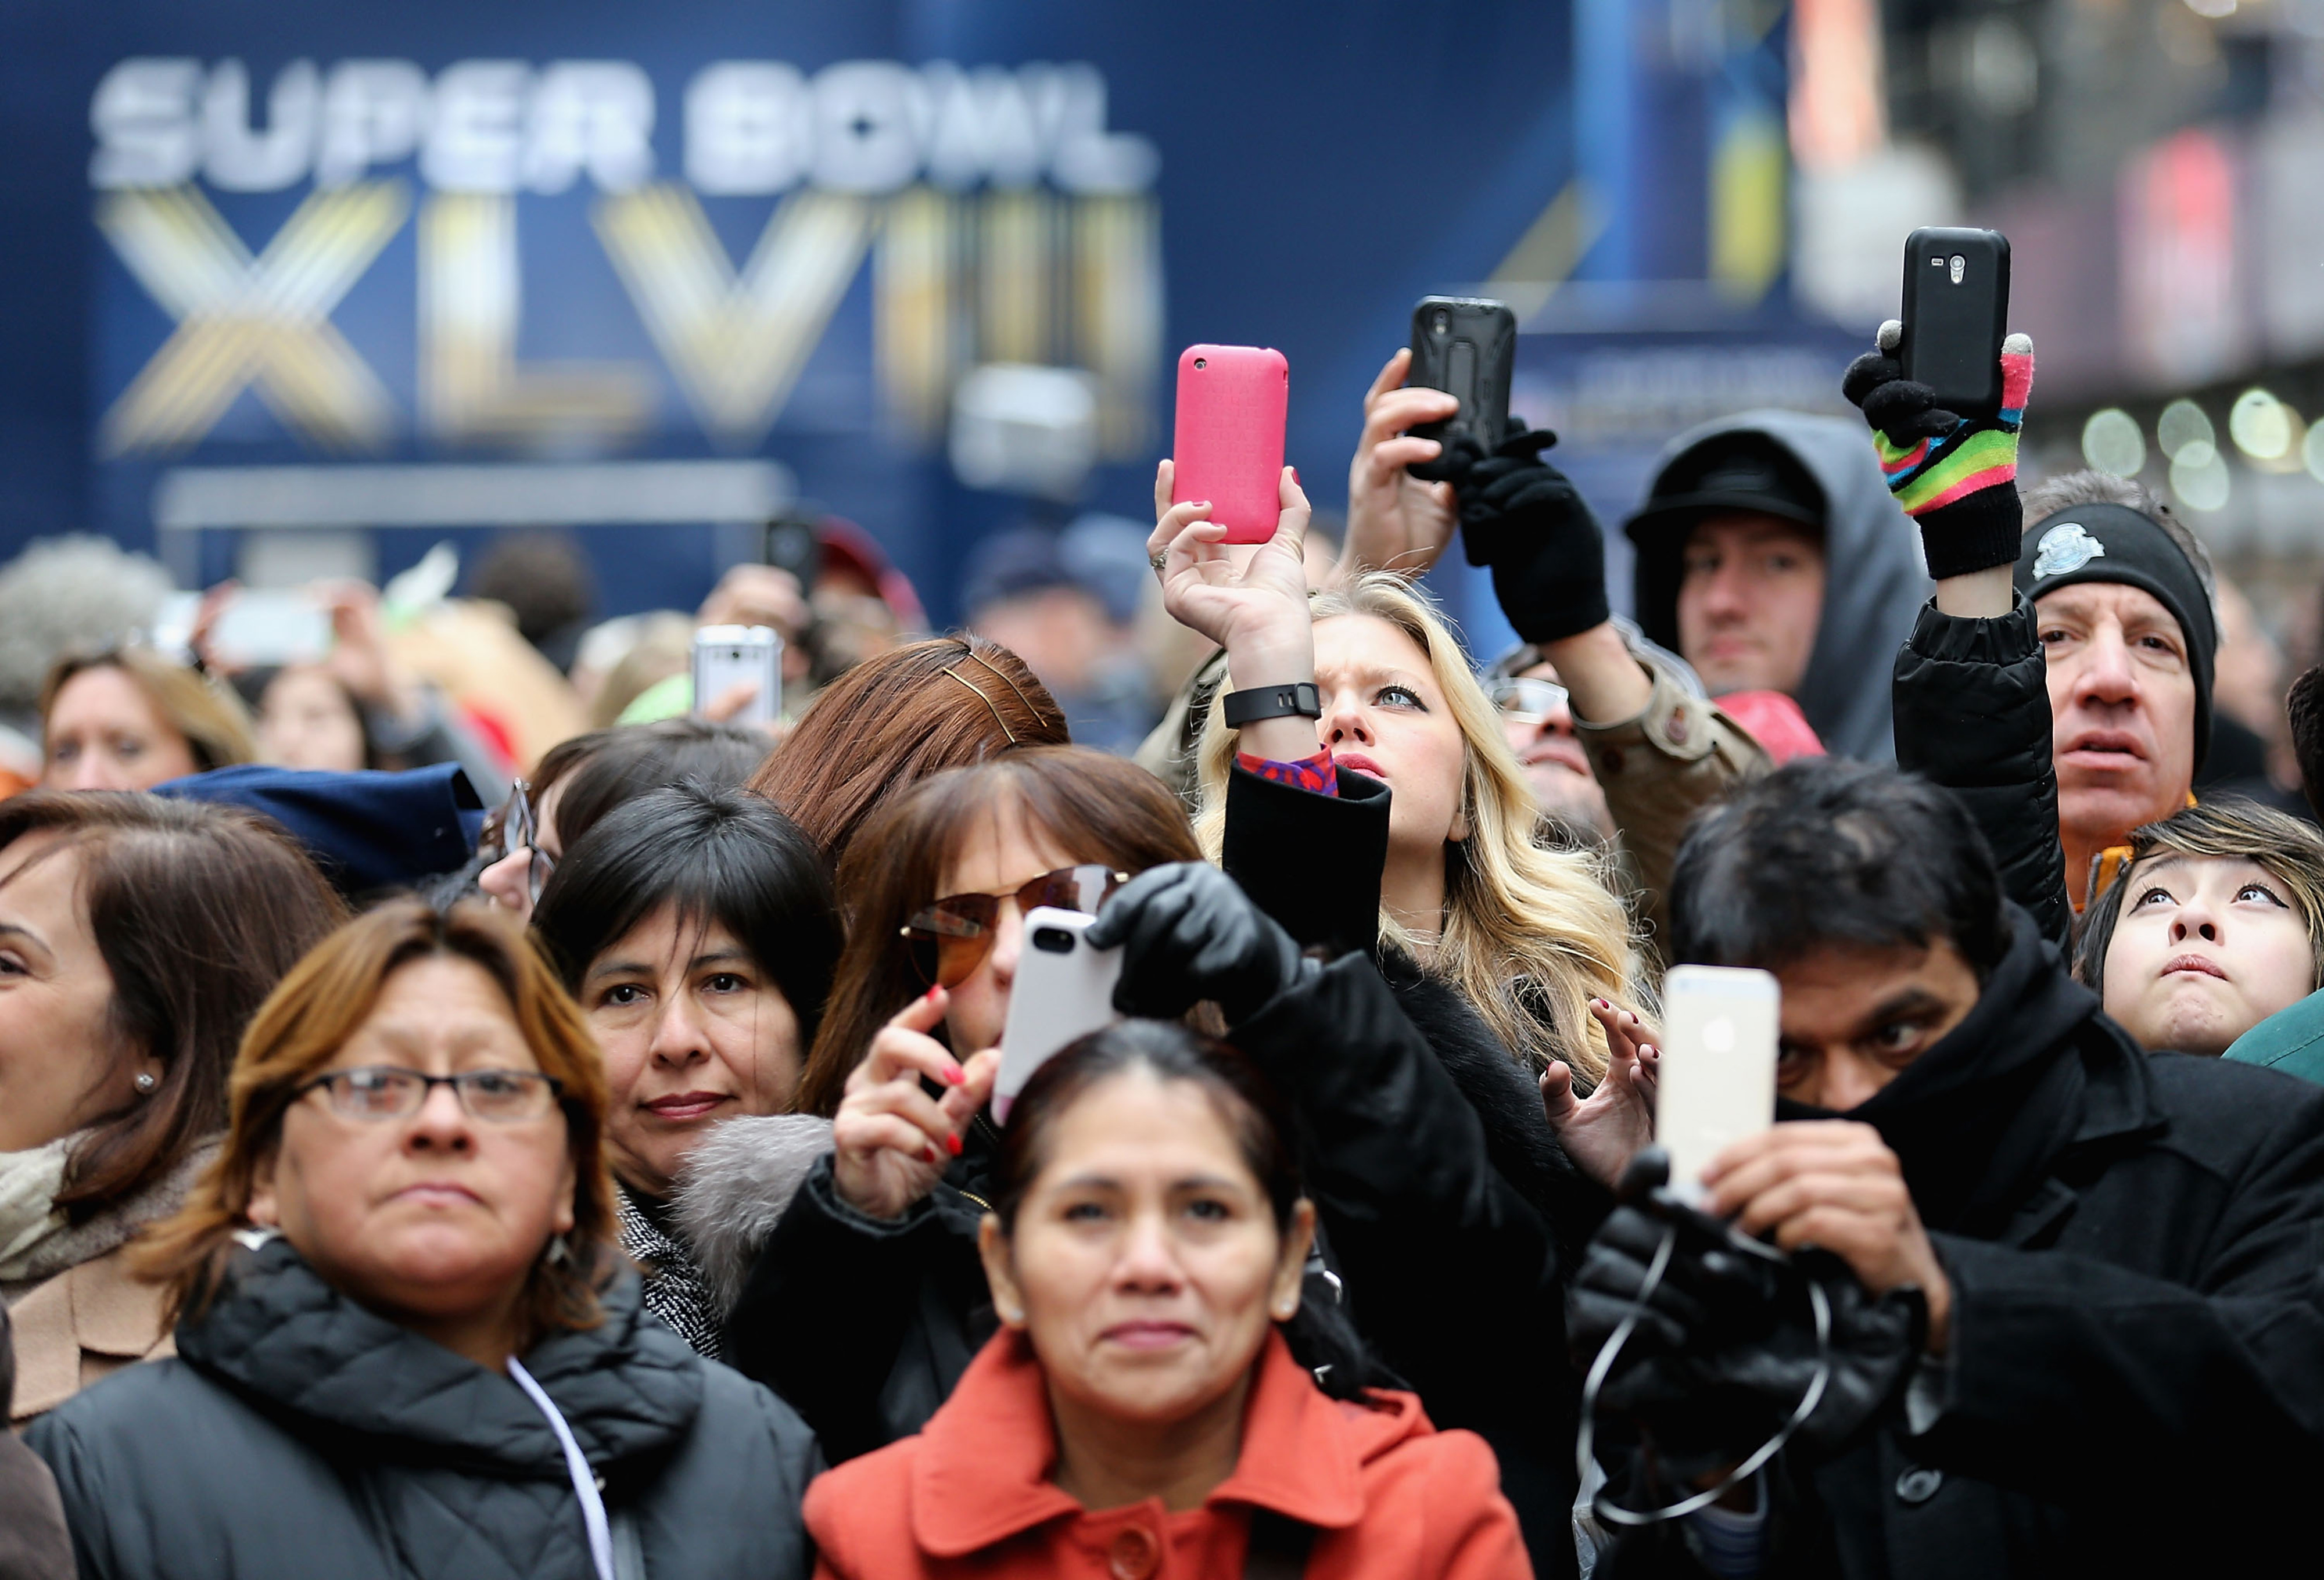 Onlookers take photos while walking through Times Square Friday